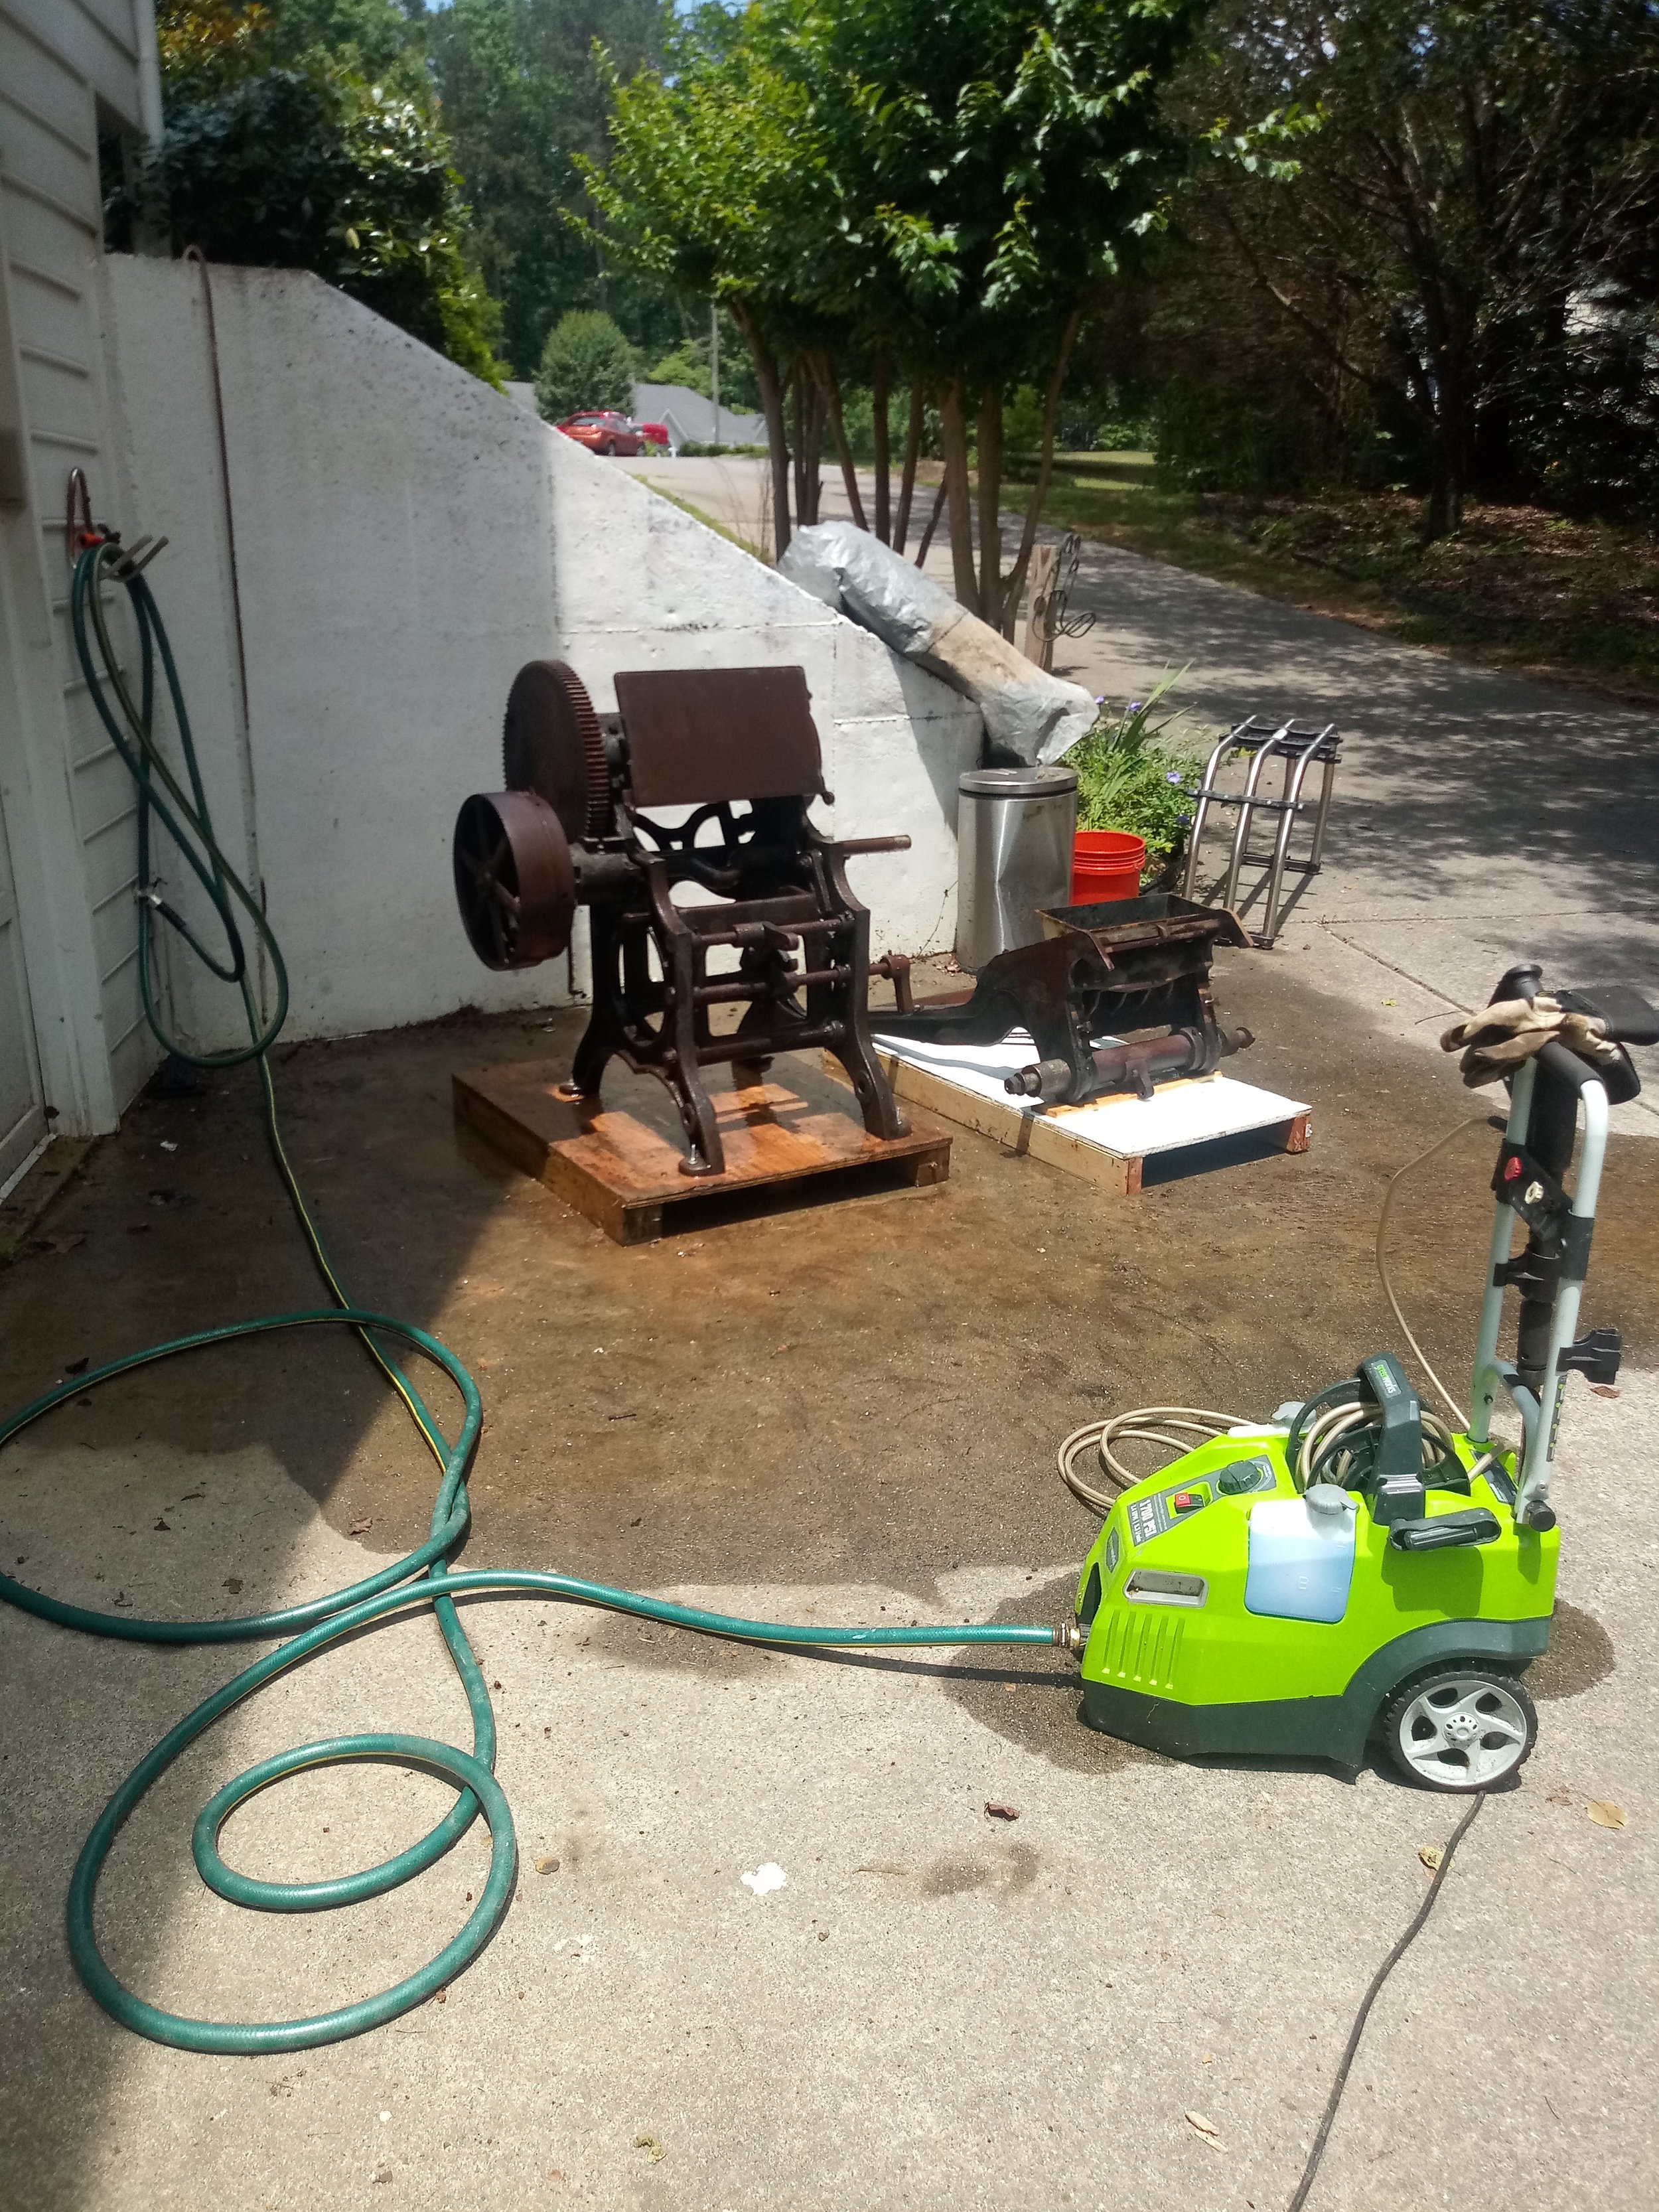 Using a pressure washer